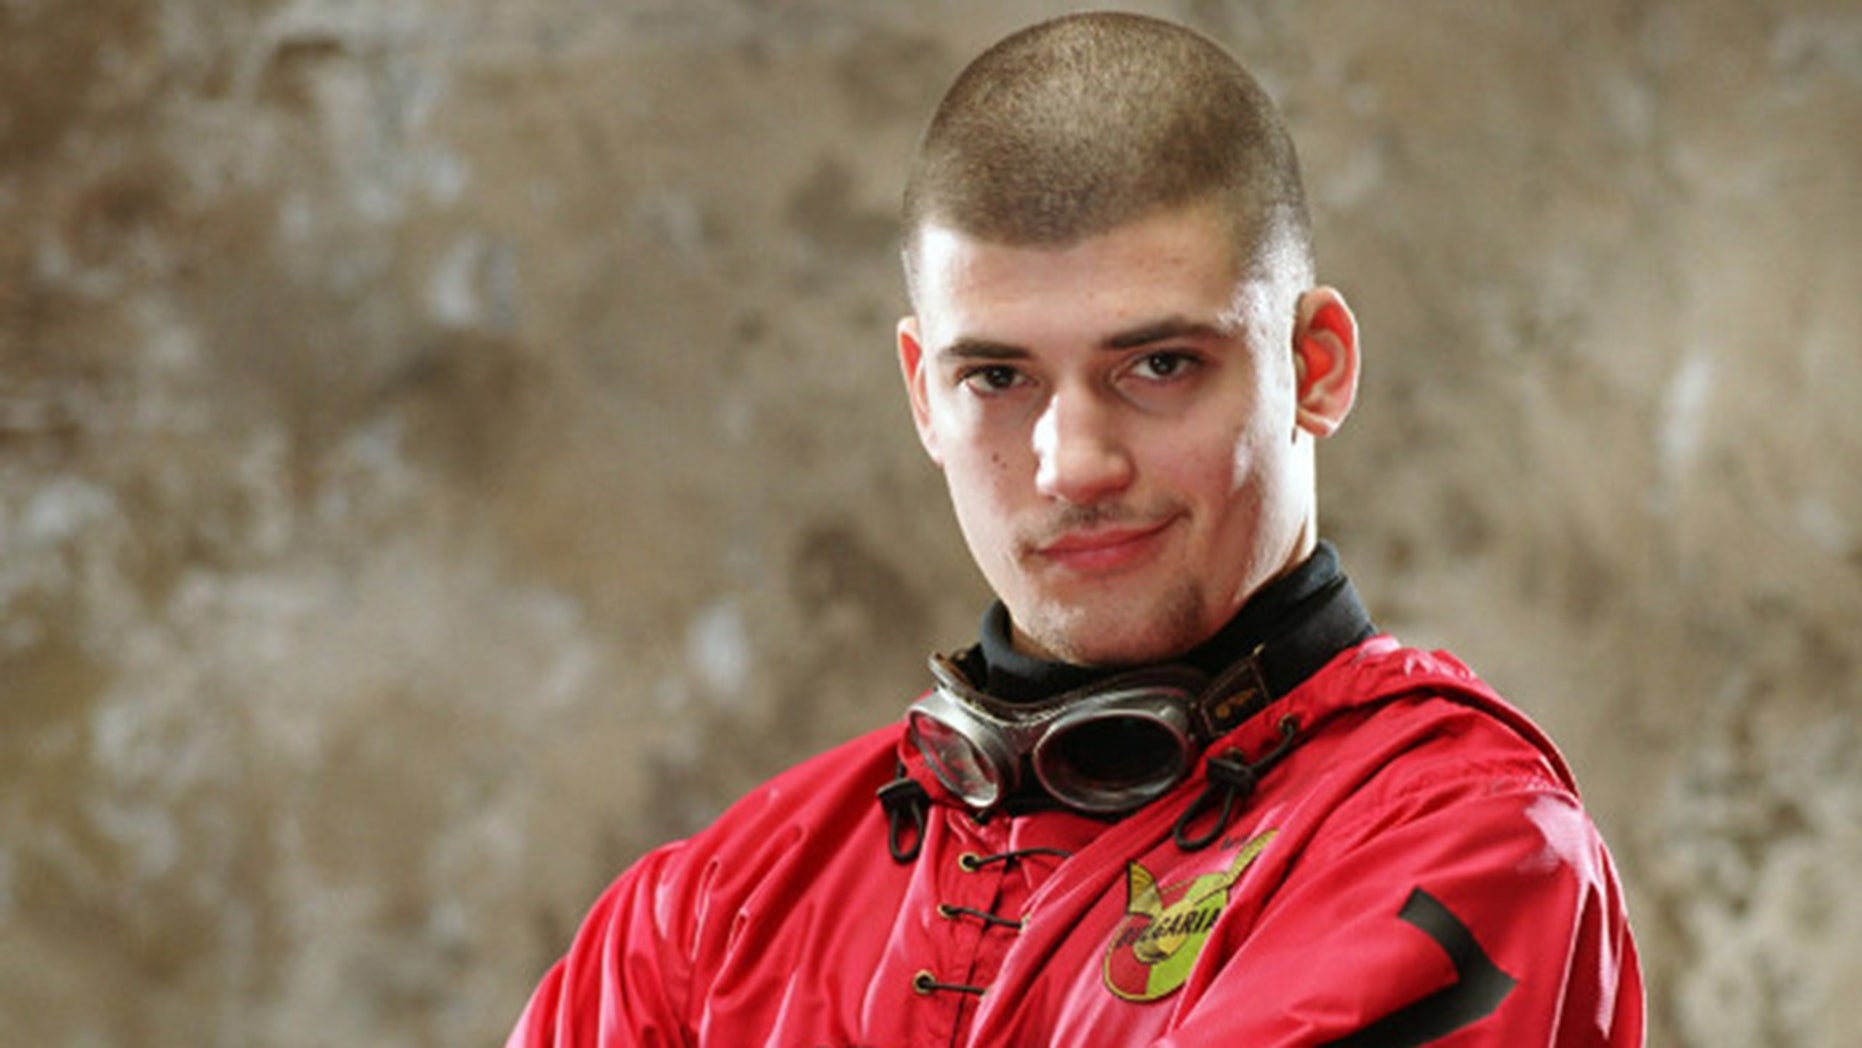 Actor Who Played Viktor Krum Looks Very Different From His Harry Potter Days Fox News Harry potter and the goblet of fire: actor who played viktor krum looks very